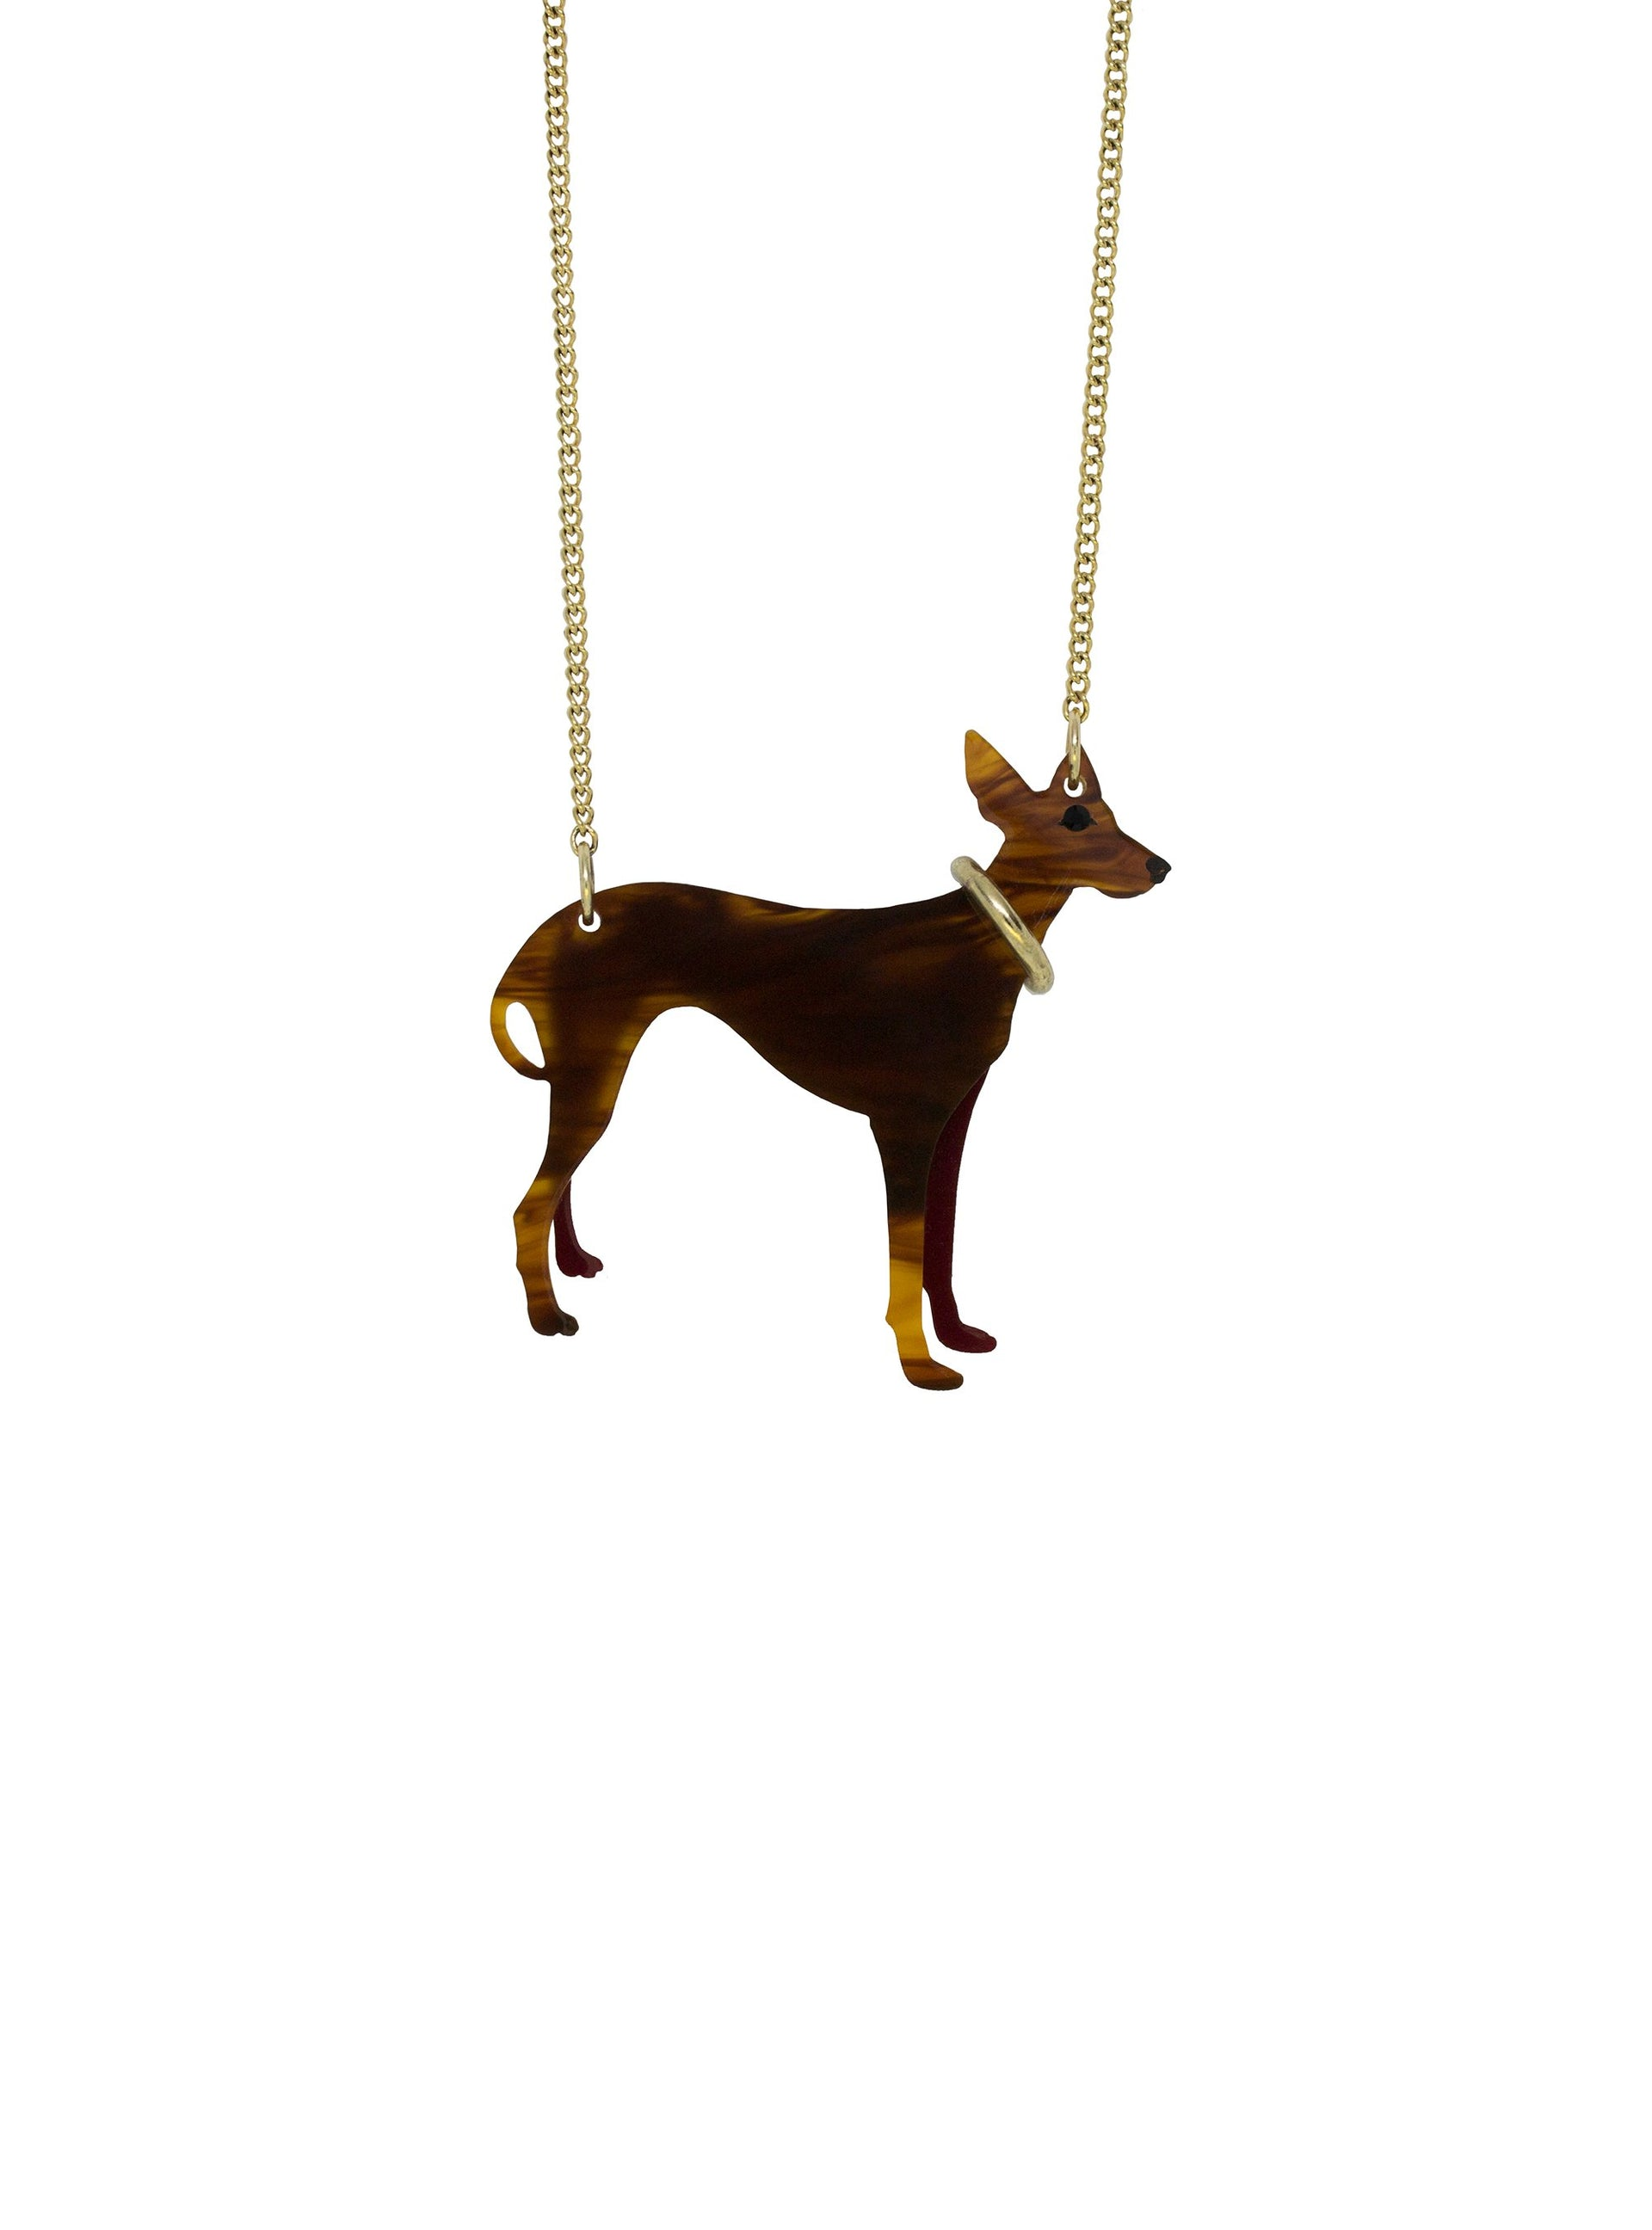 Fanny-the-Dog-Necklace